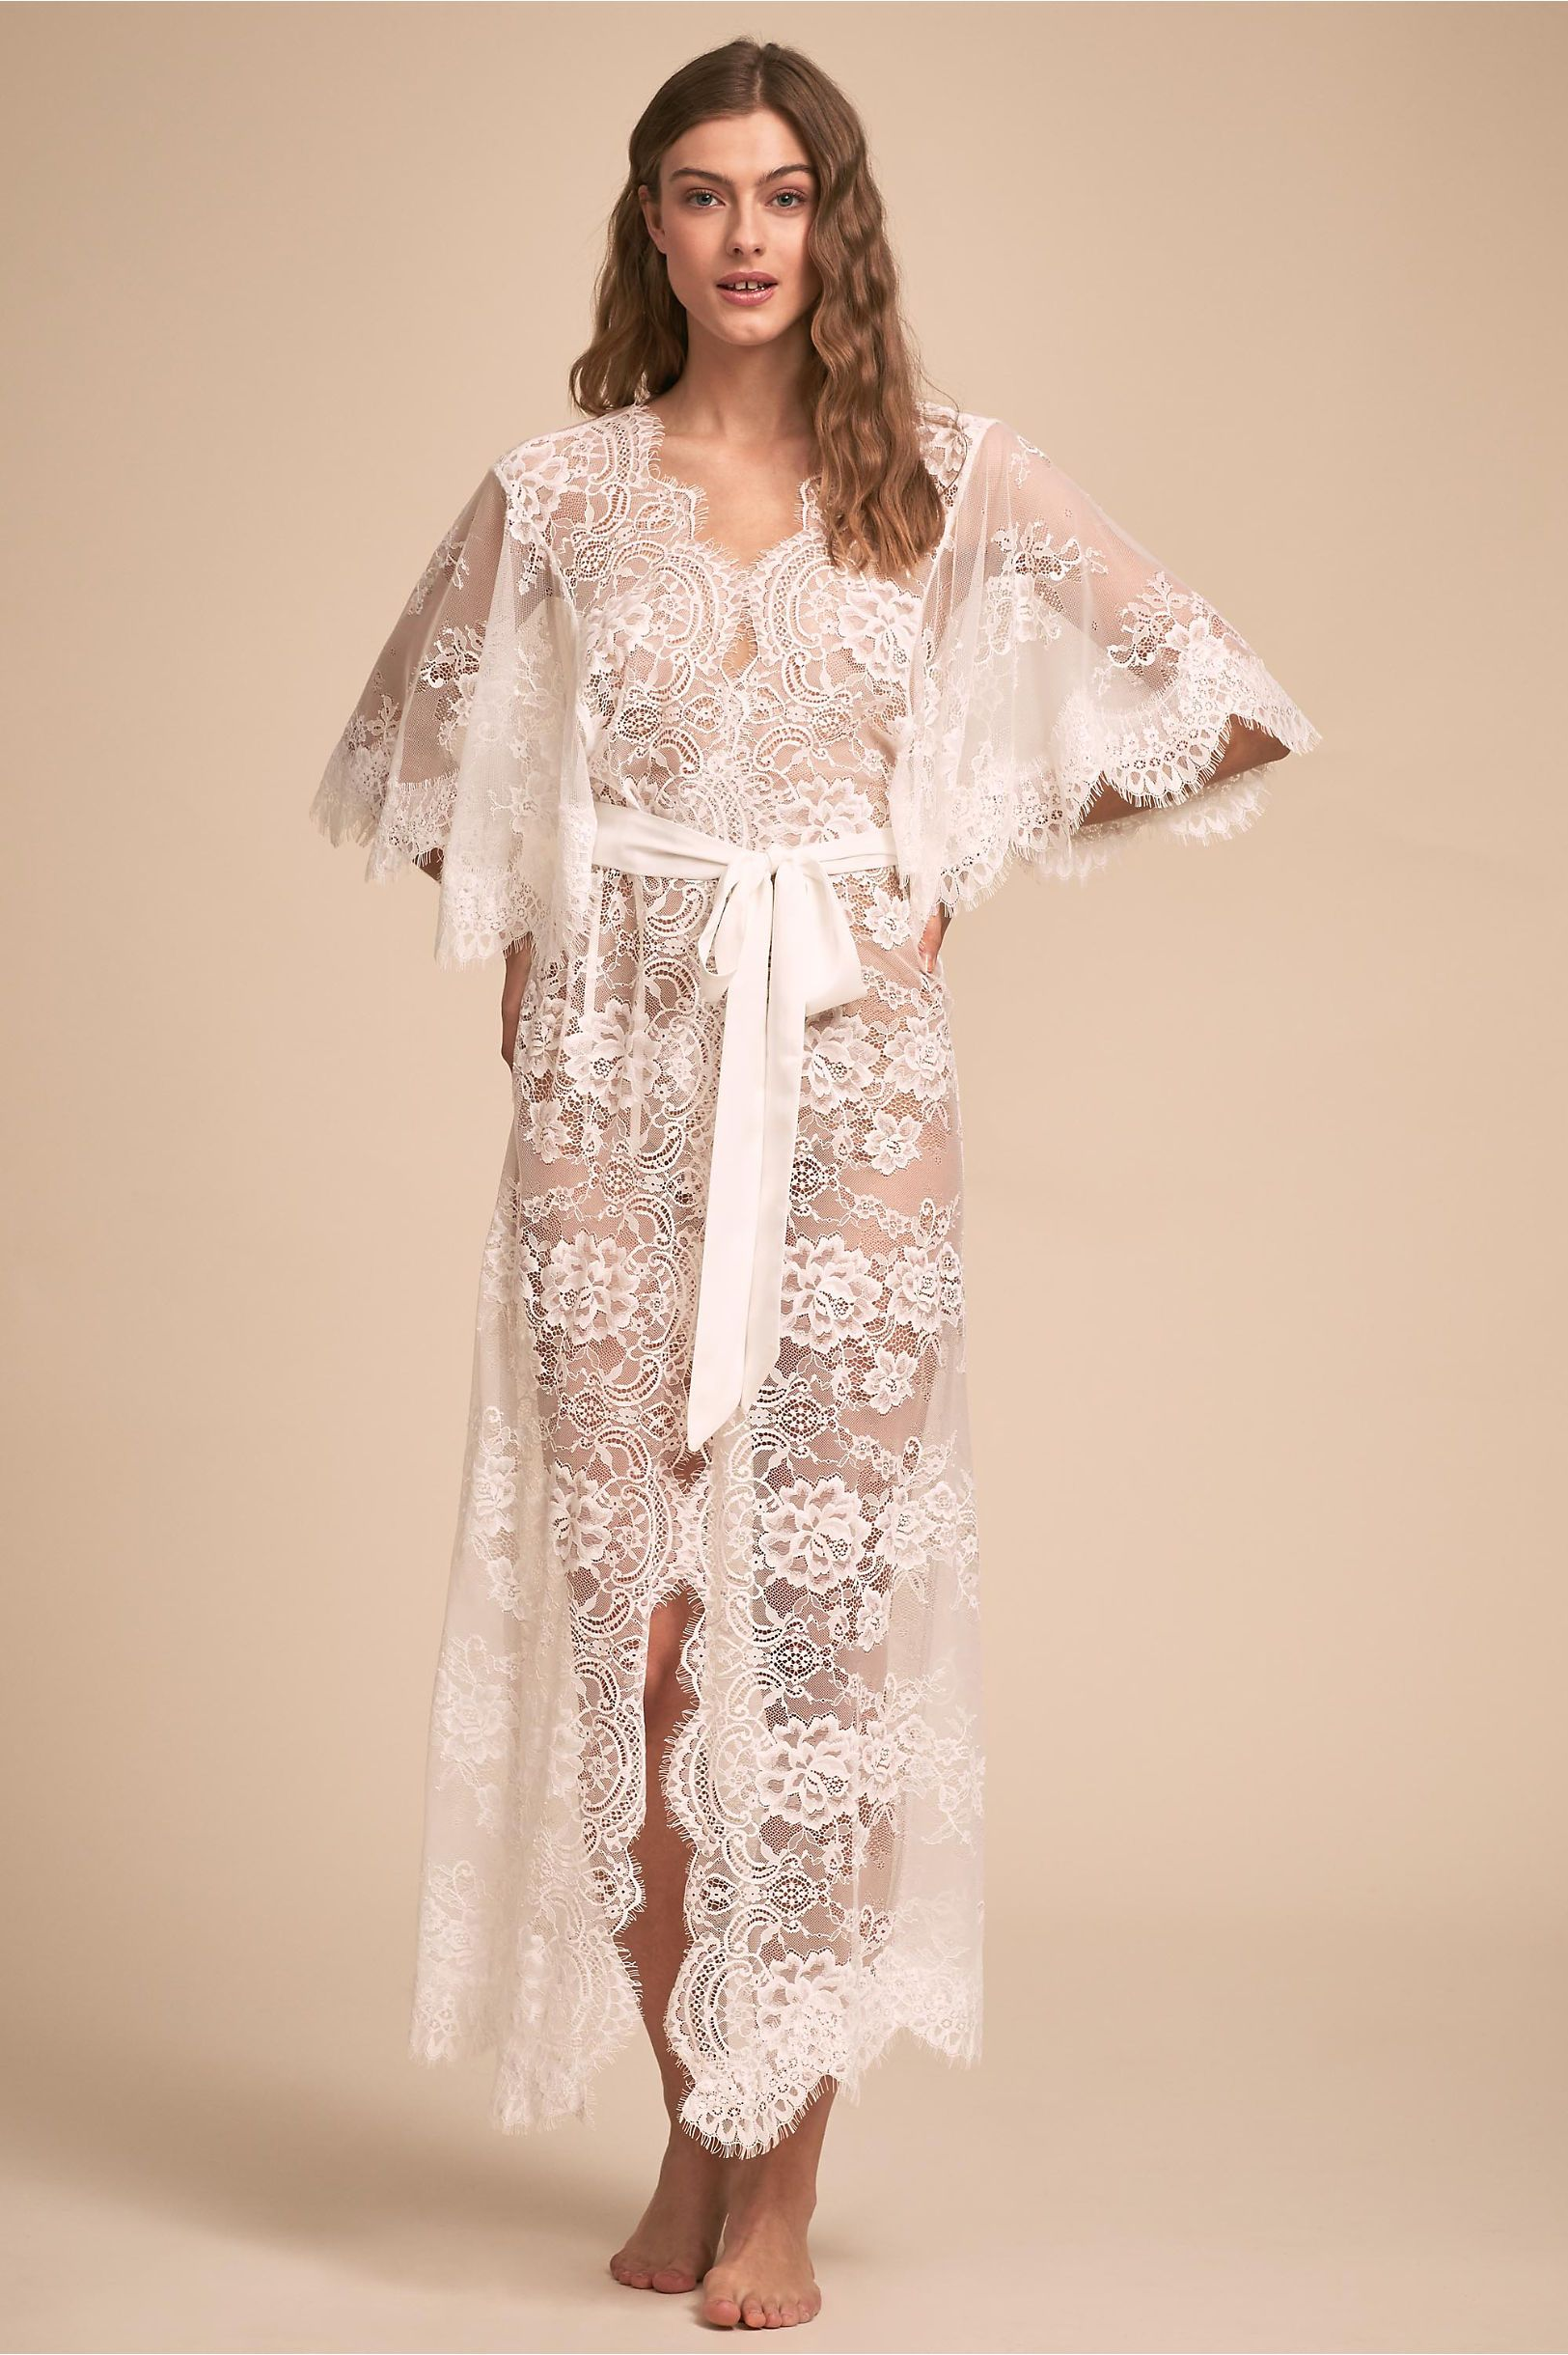 8d78cf102 BHLDN s Homebodii Kassiah Lace Robe in Ivory